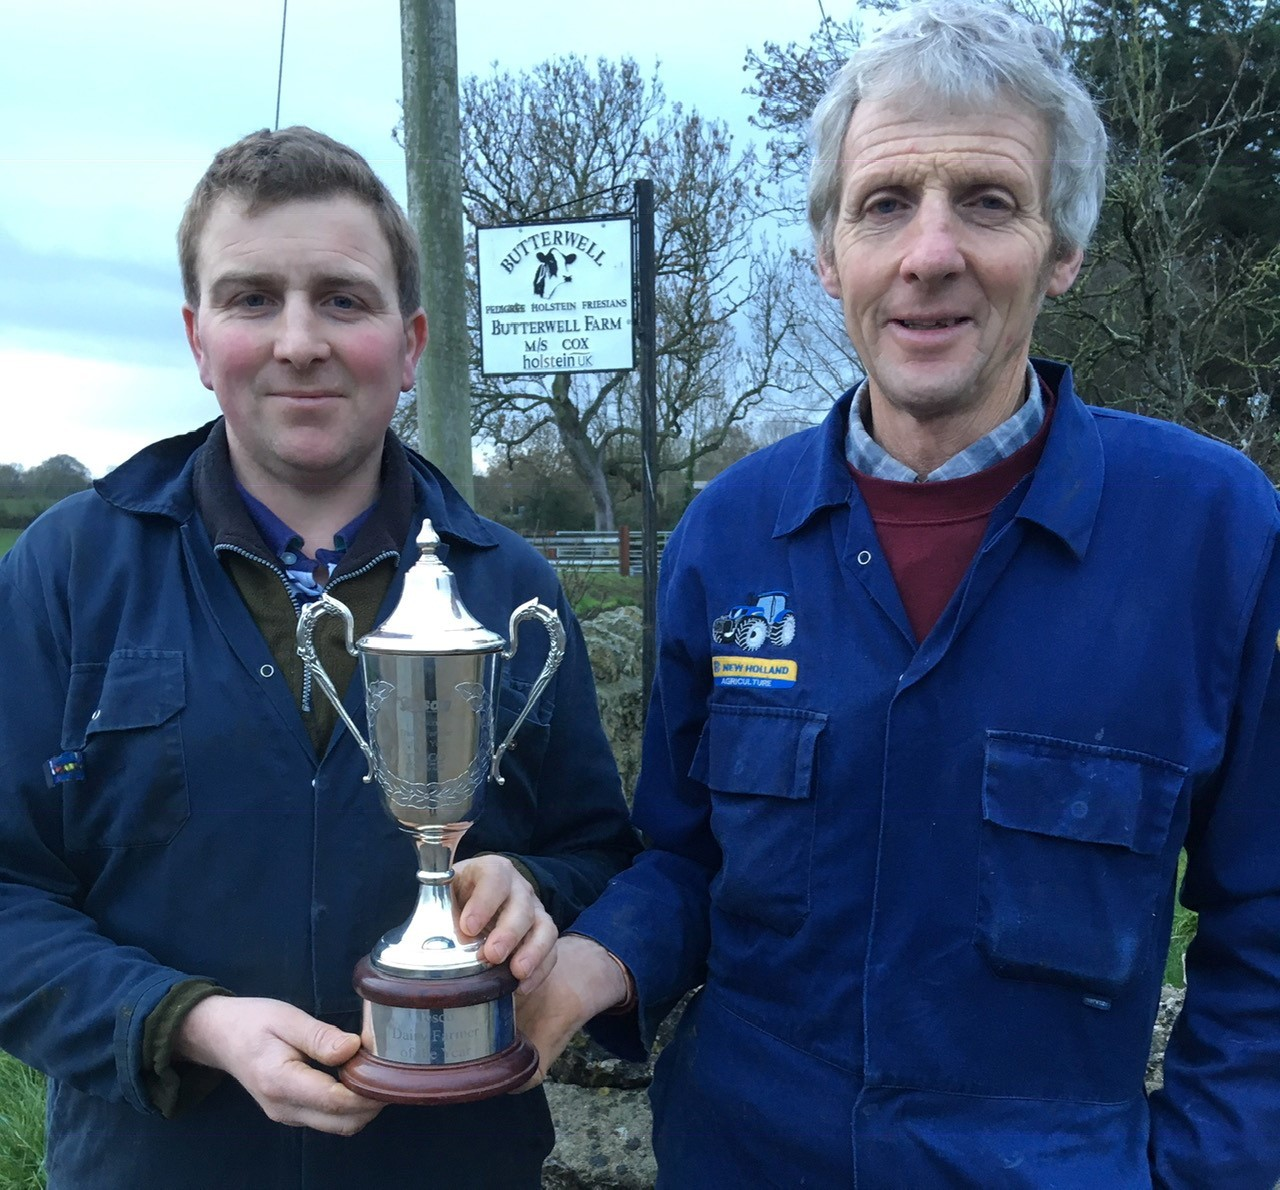 Adrian and his dad Stephen with the TSDG farmer of the year cup